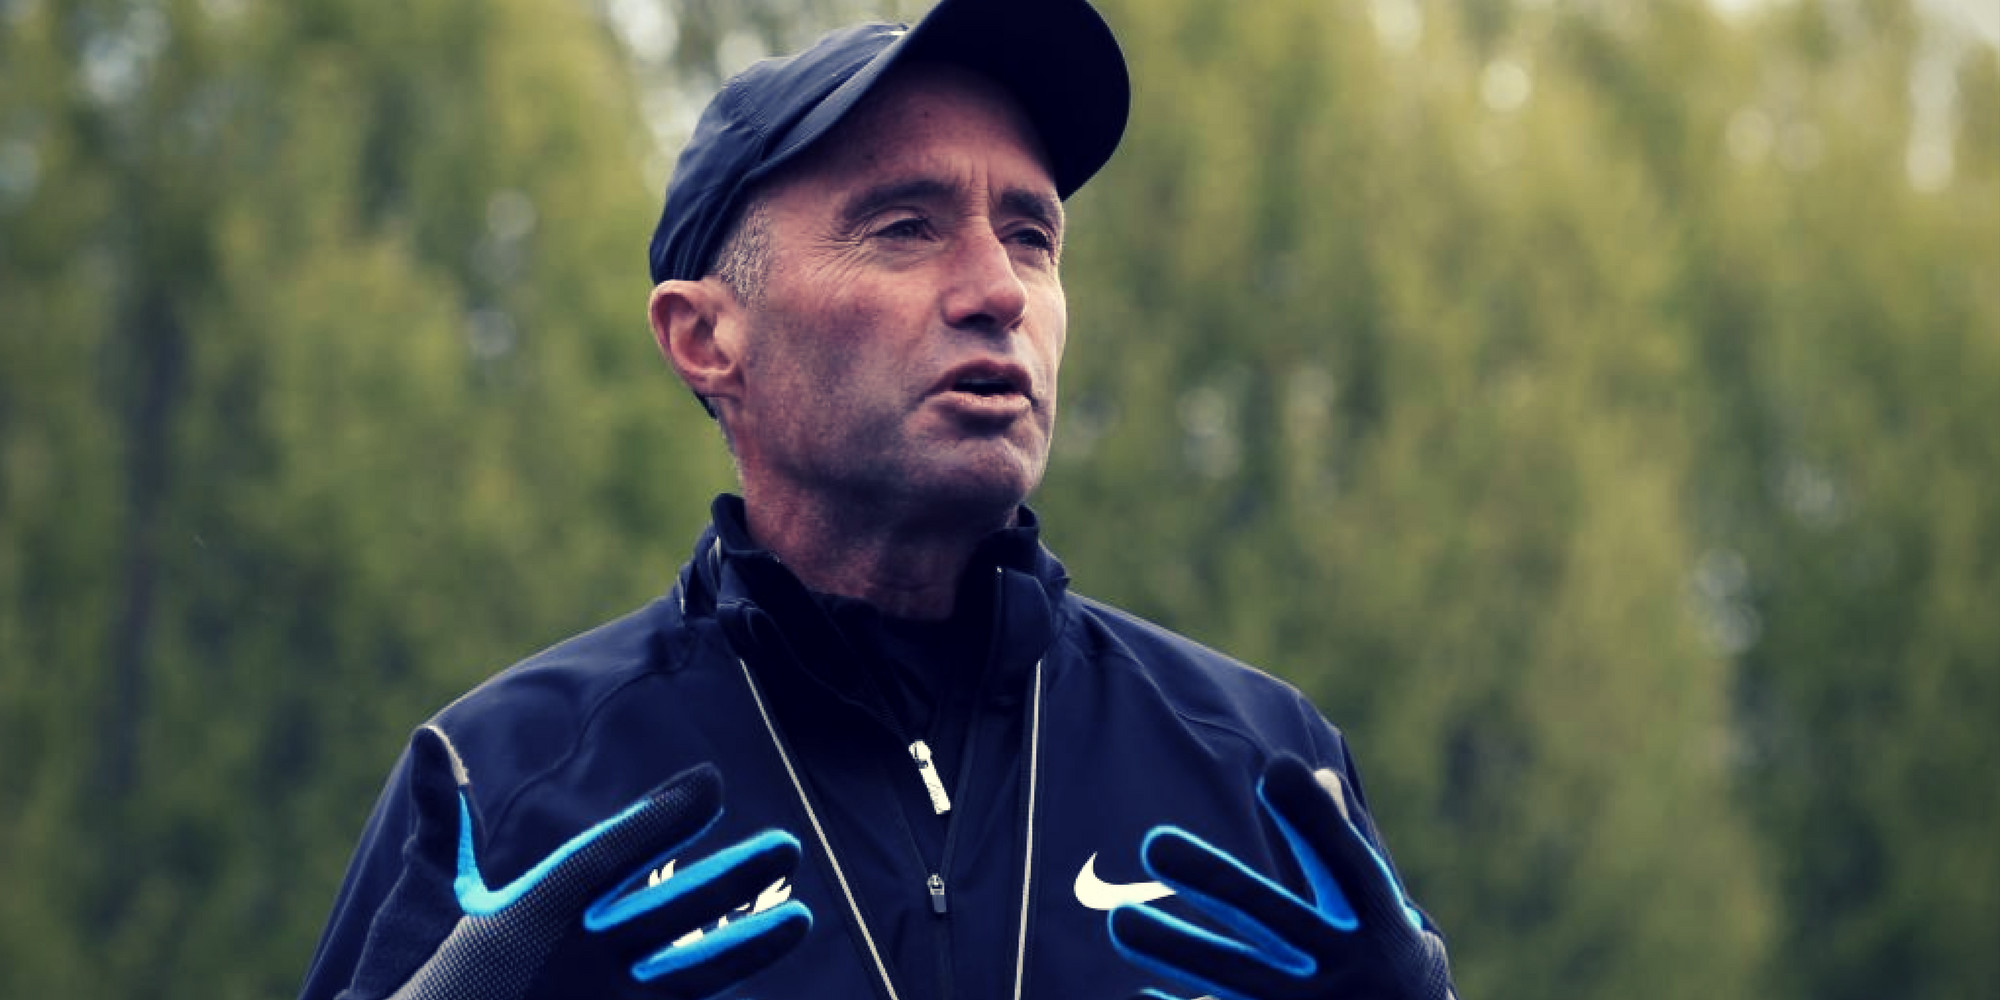 Salazar has appealed against the ban to the Court of British anti-doping agency Arbitration for Sport